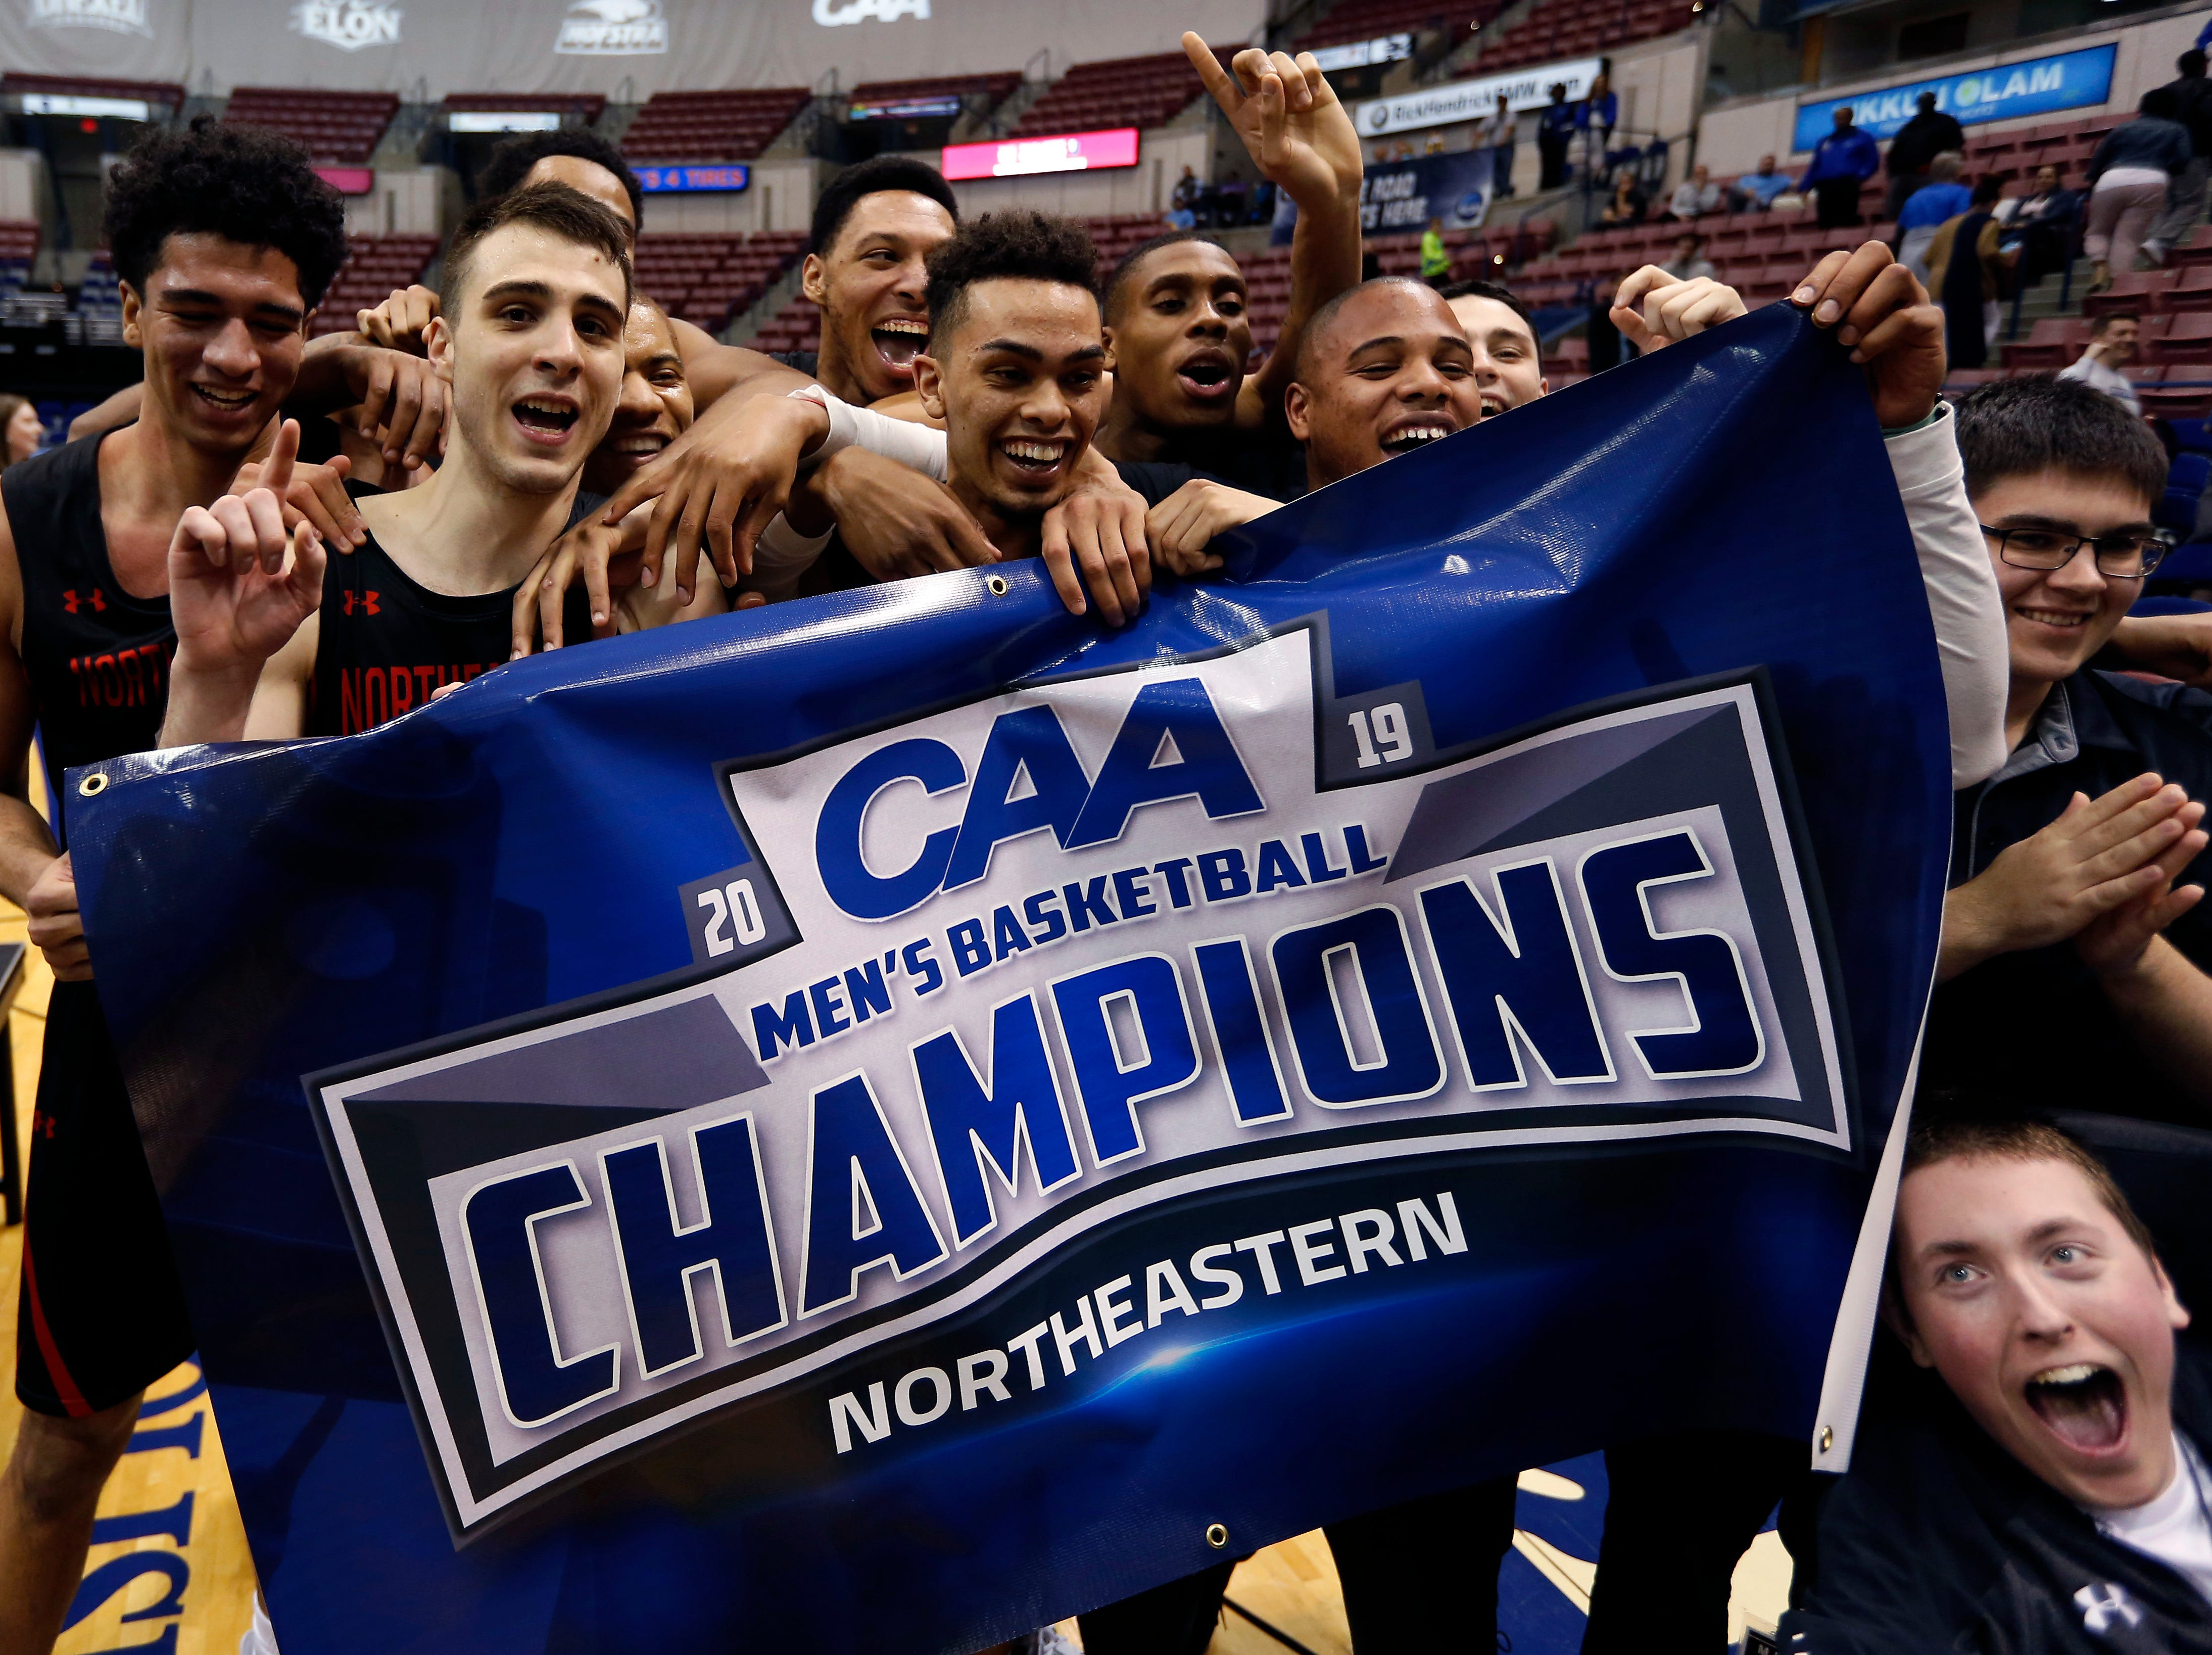 Northeastern (23-10), No. 13 seed in Midwest, Colonial Athletic Association champion